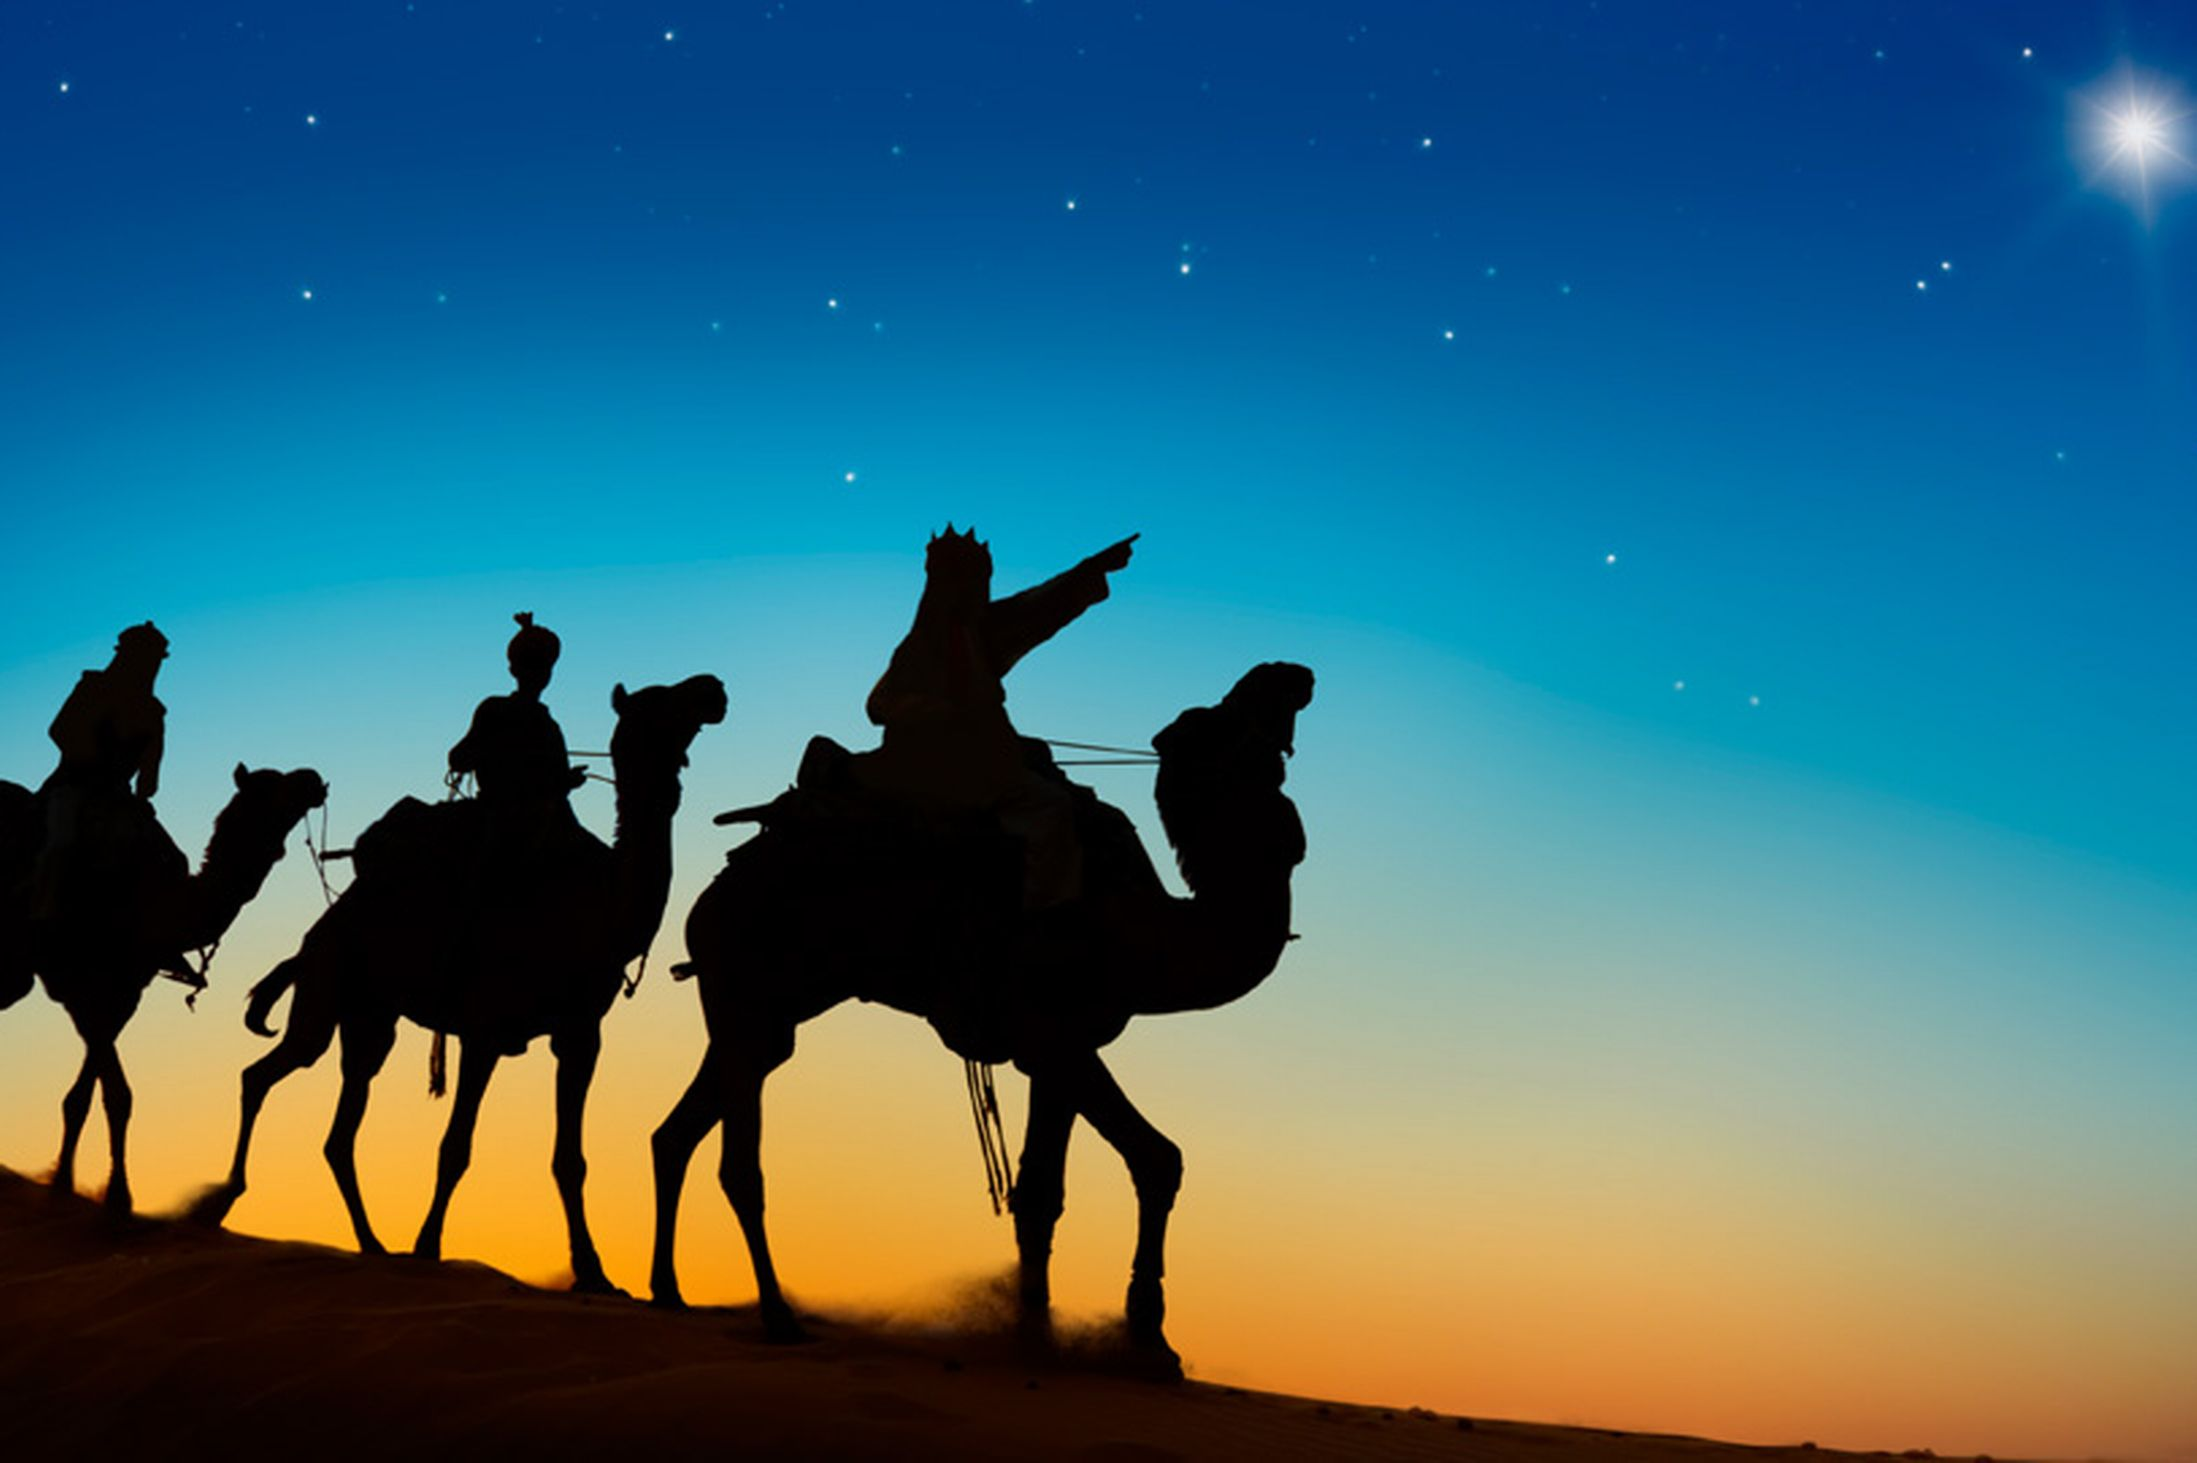 Scholars Find Evidence Of A Fourth Wise Man Bearing Fruitcake | The ...